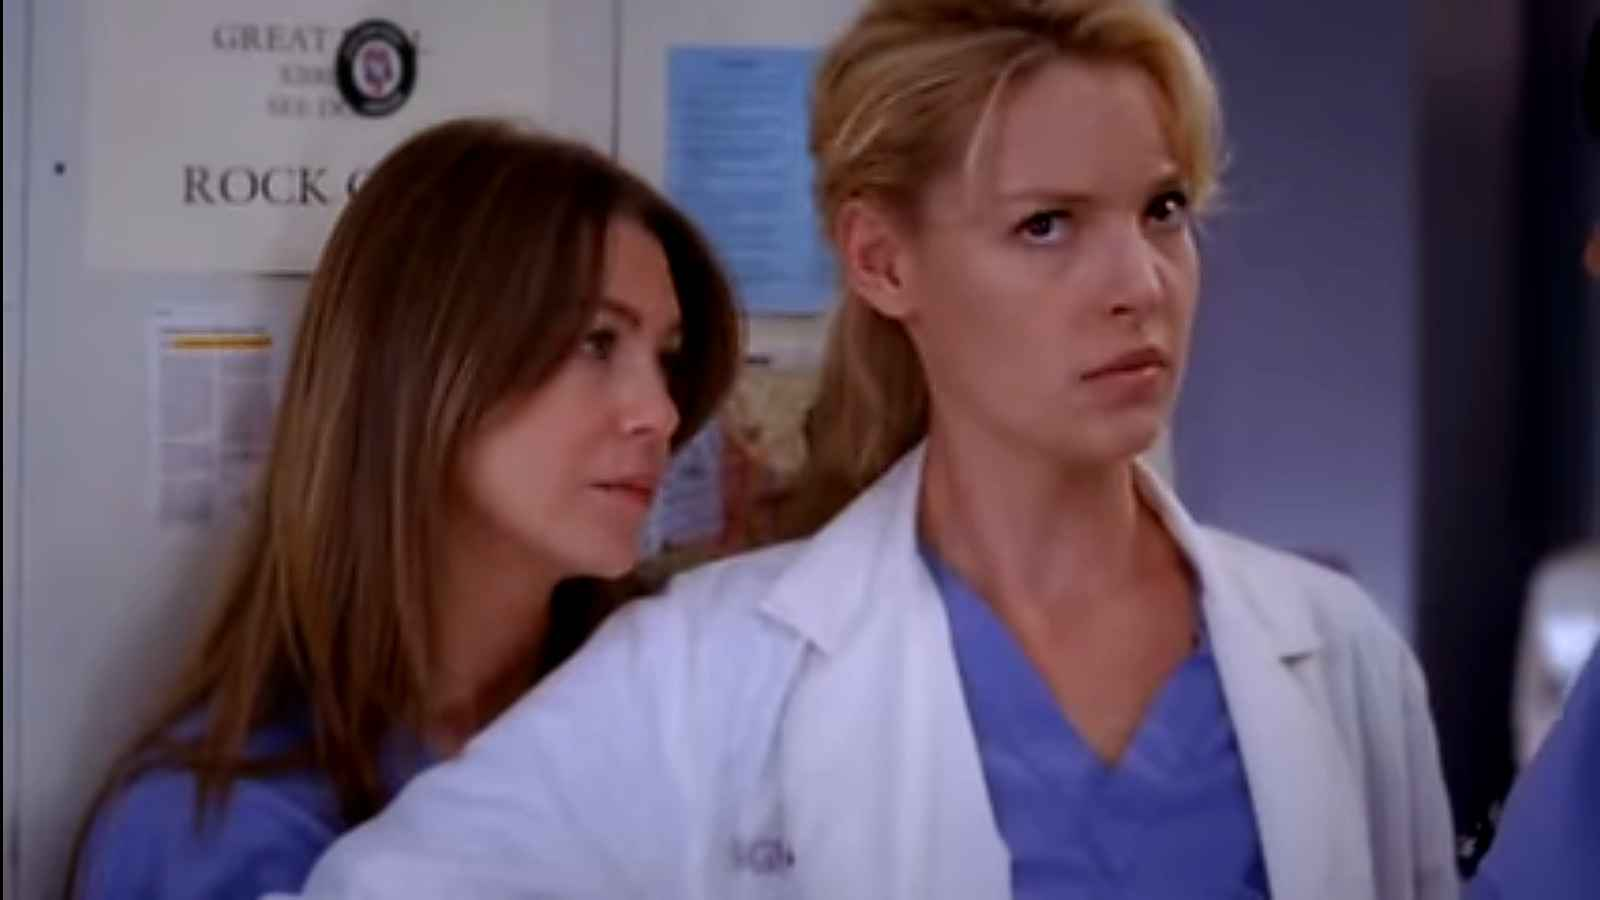 Grey's Anatomy stars Ellen Pompeo and Katherine Heigl